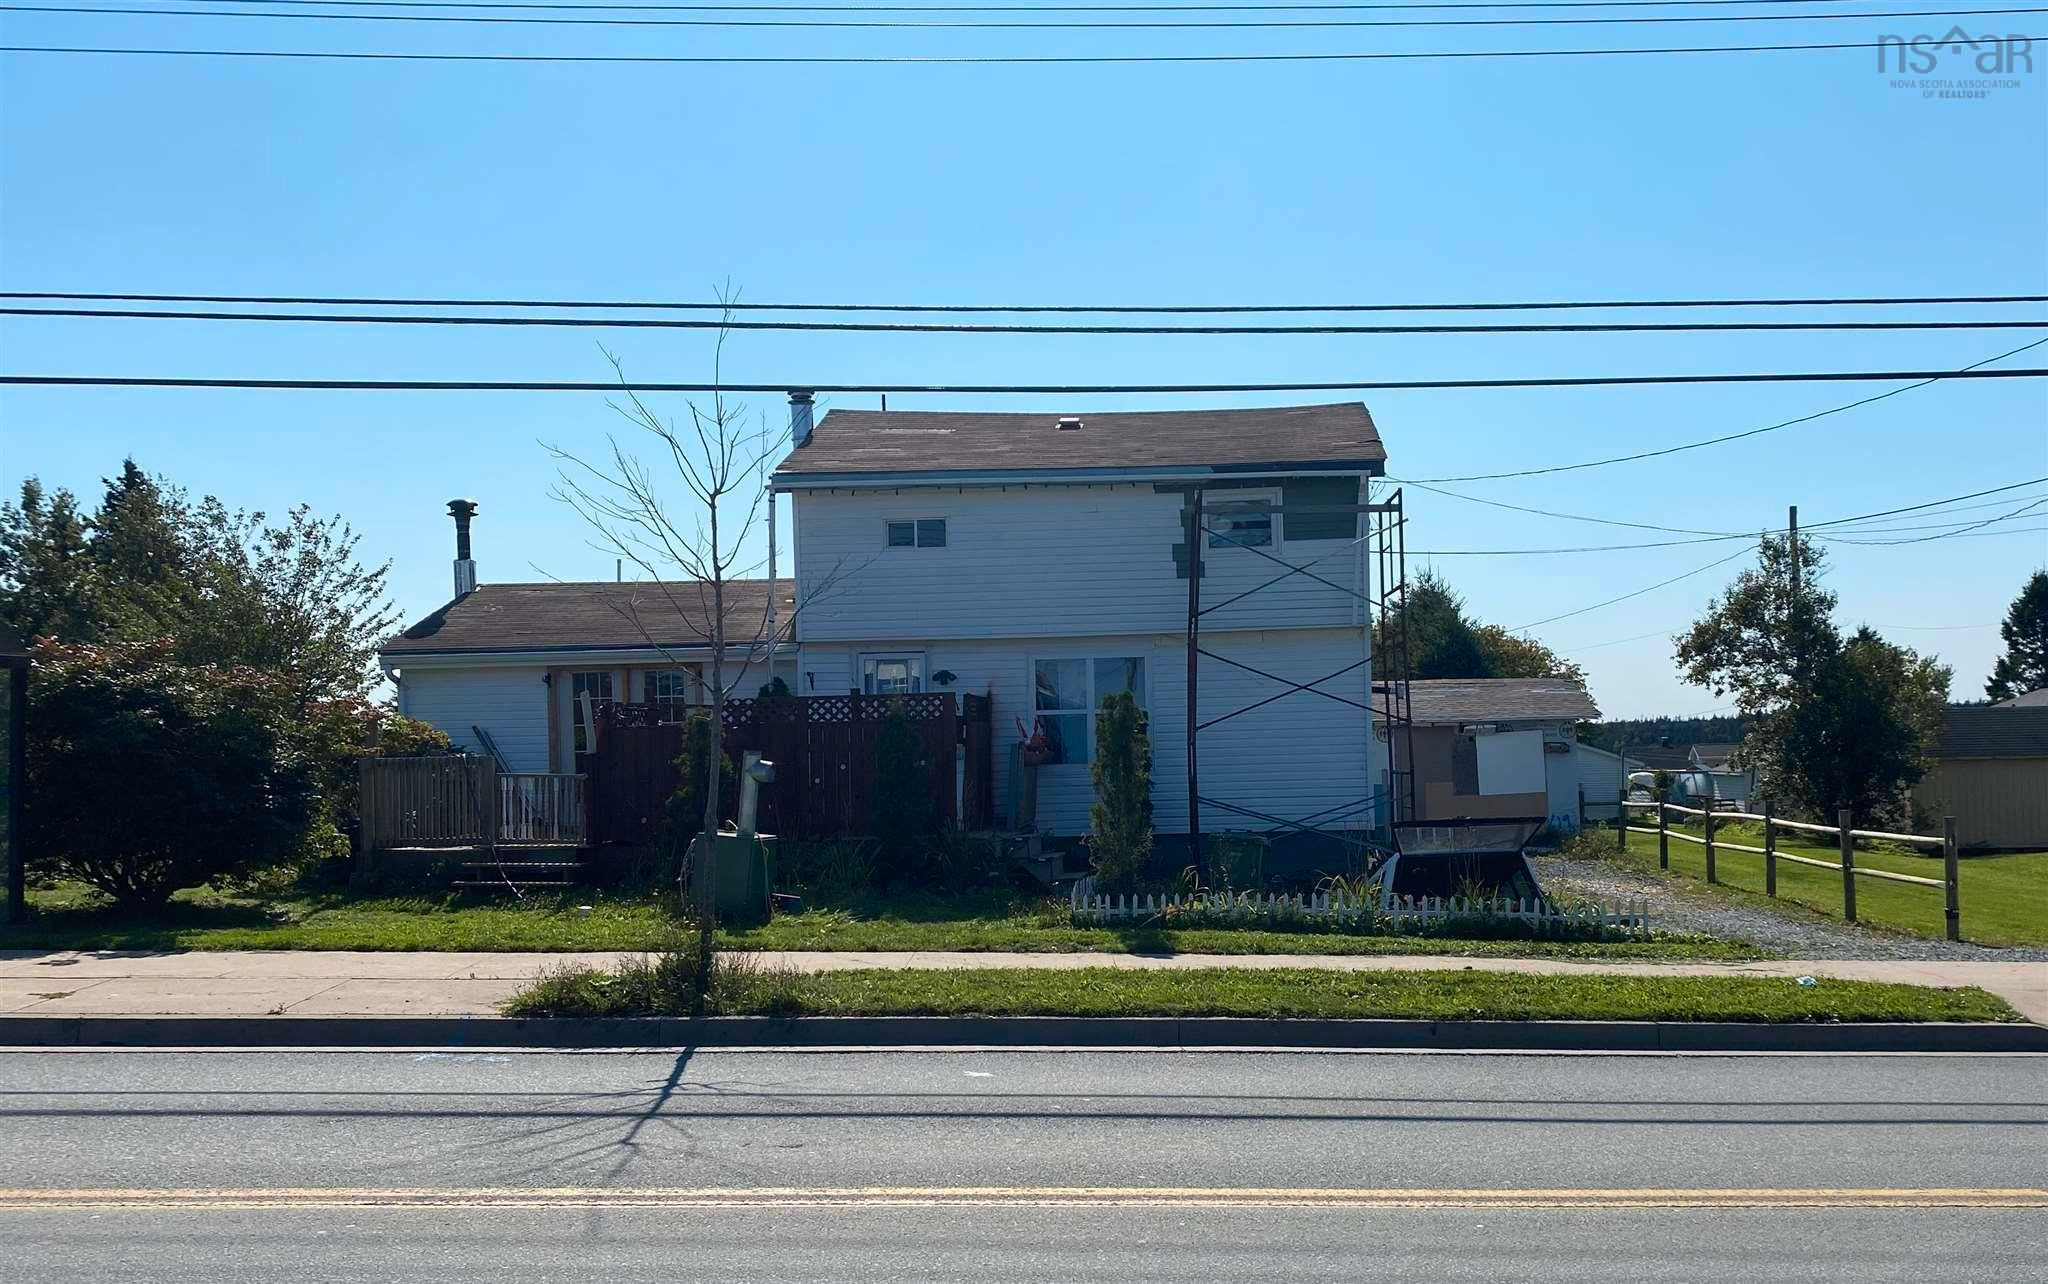 Main Photo: 115 Cow Bay Road in Eastern Passage: 11-Dartmouth Woodside, Eastern Passage, Cow Bay Residential for sale (Halifax-Dartmouth)  : MLS®# 202124315